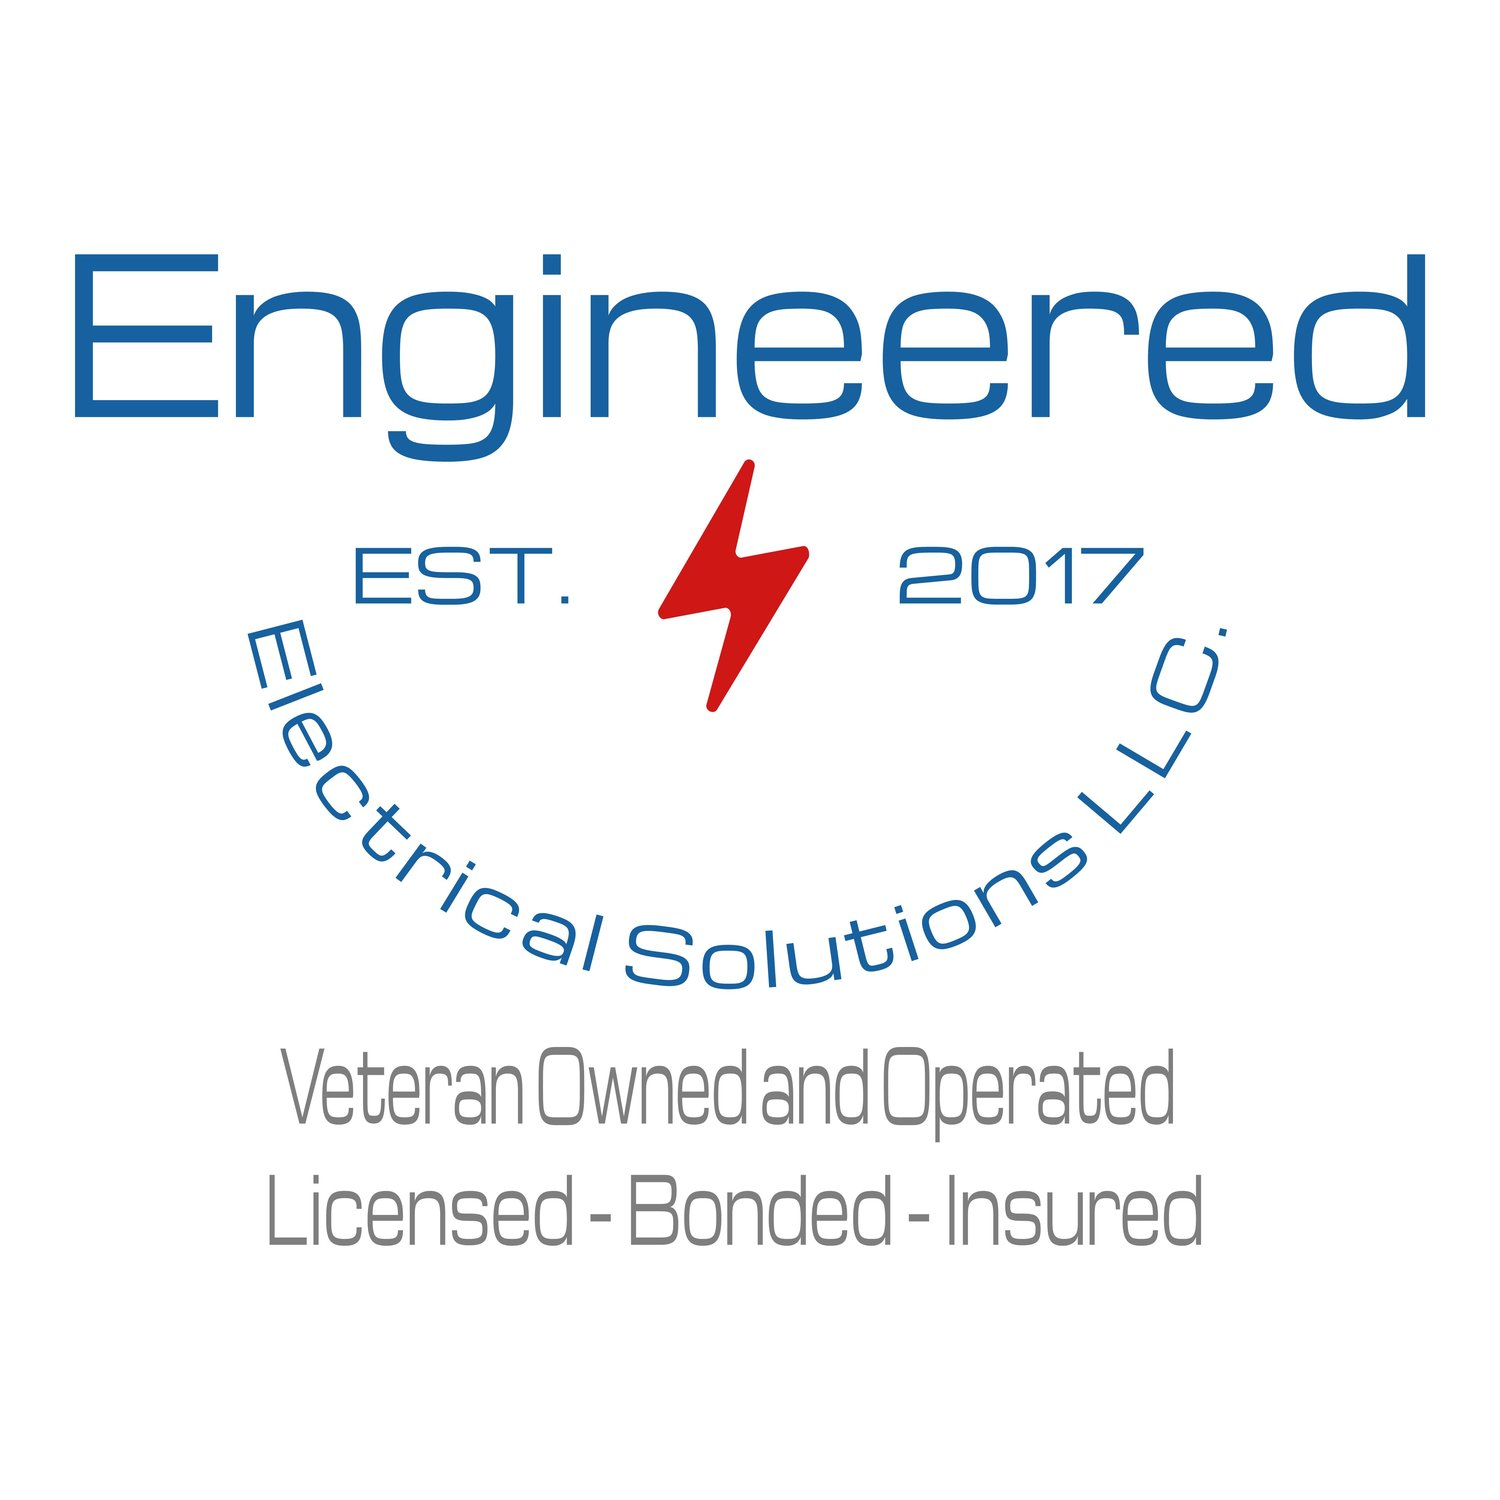 Engineered Electrical Solutions LLC on